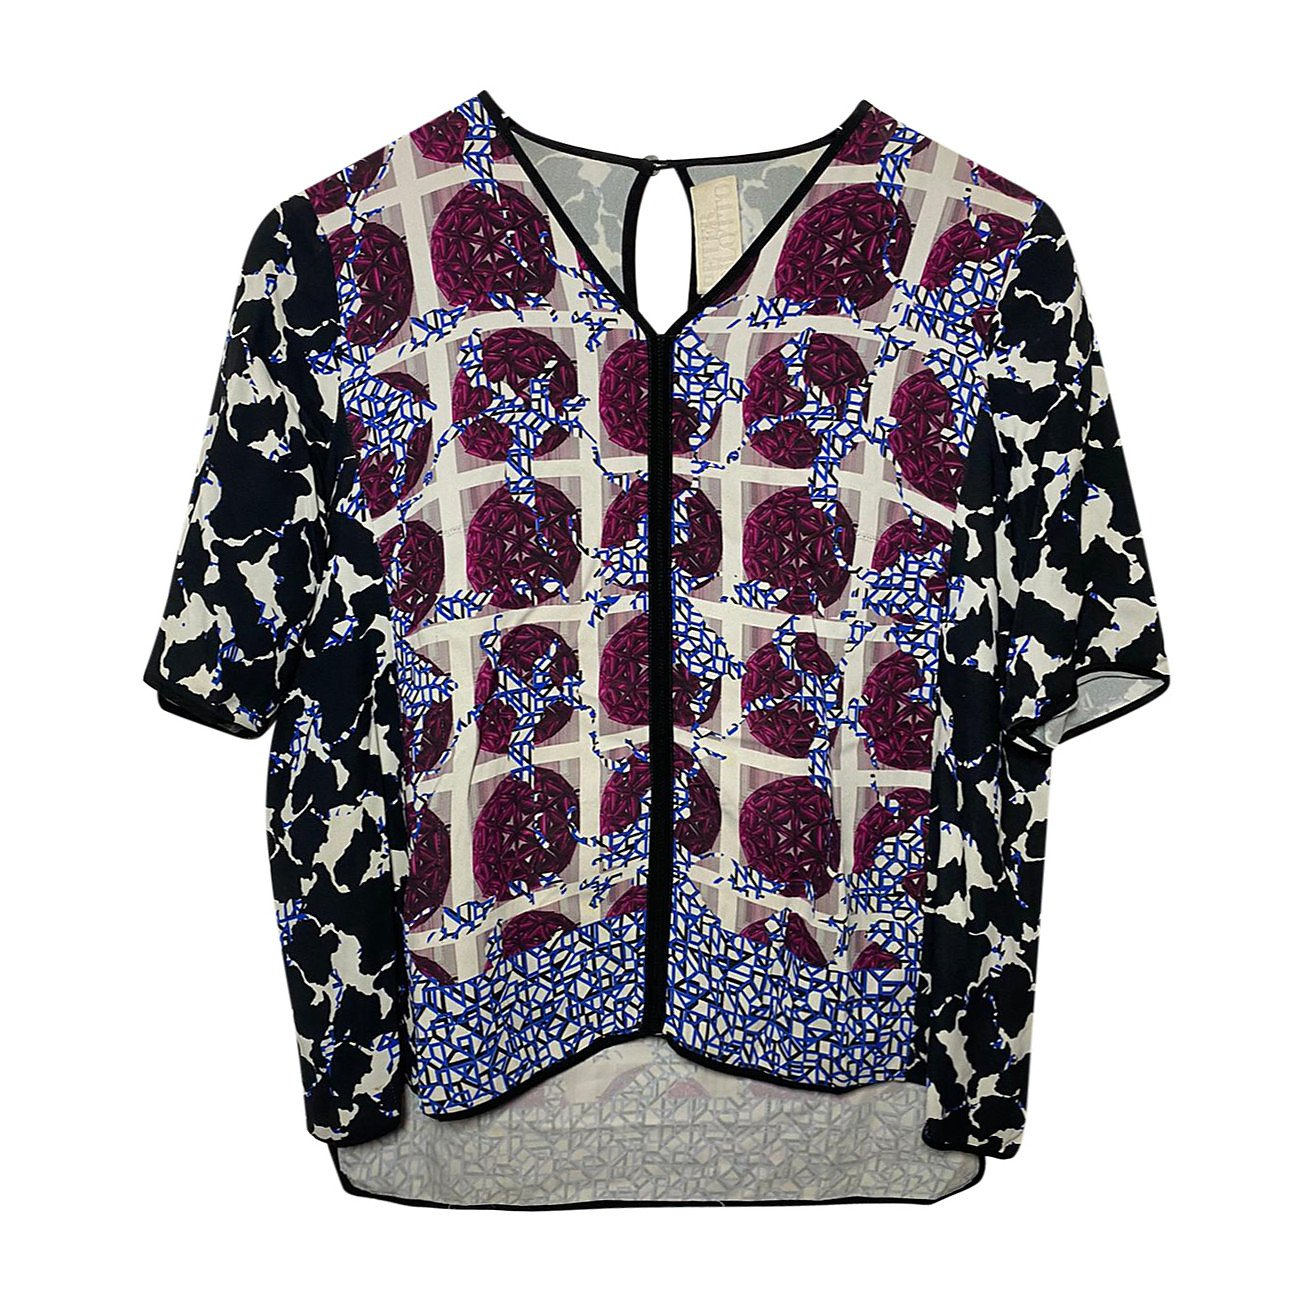 Peter Pilotto Patterned Blouse